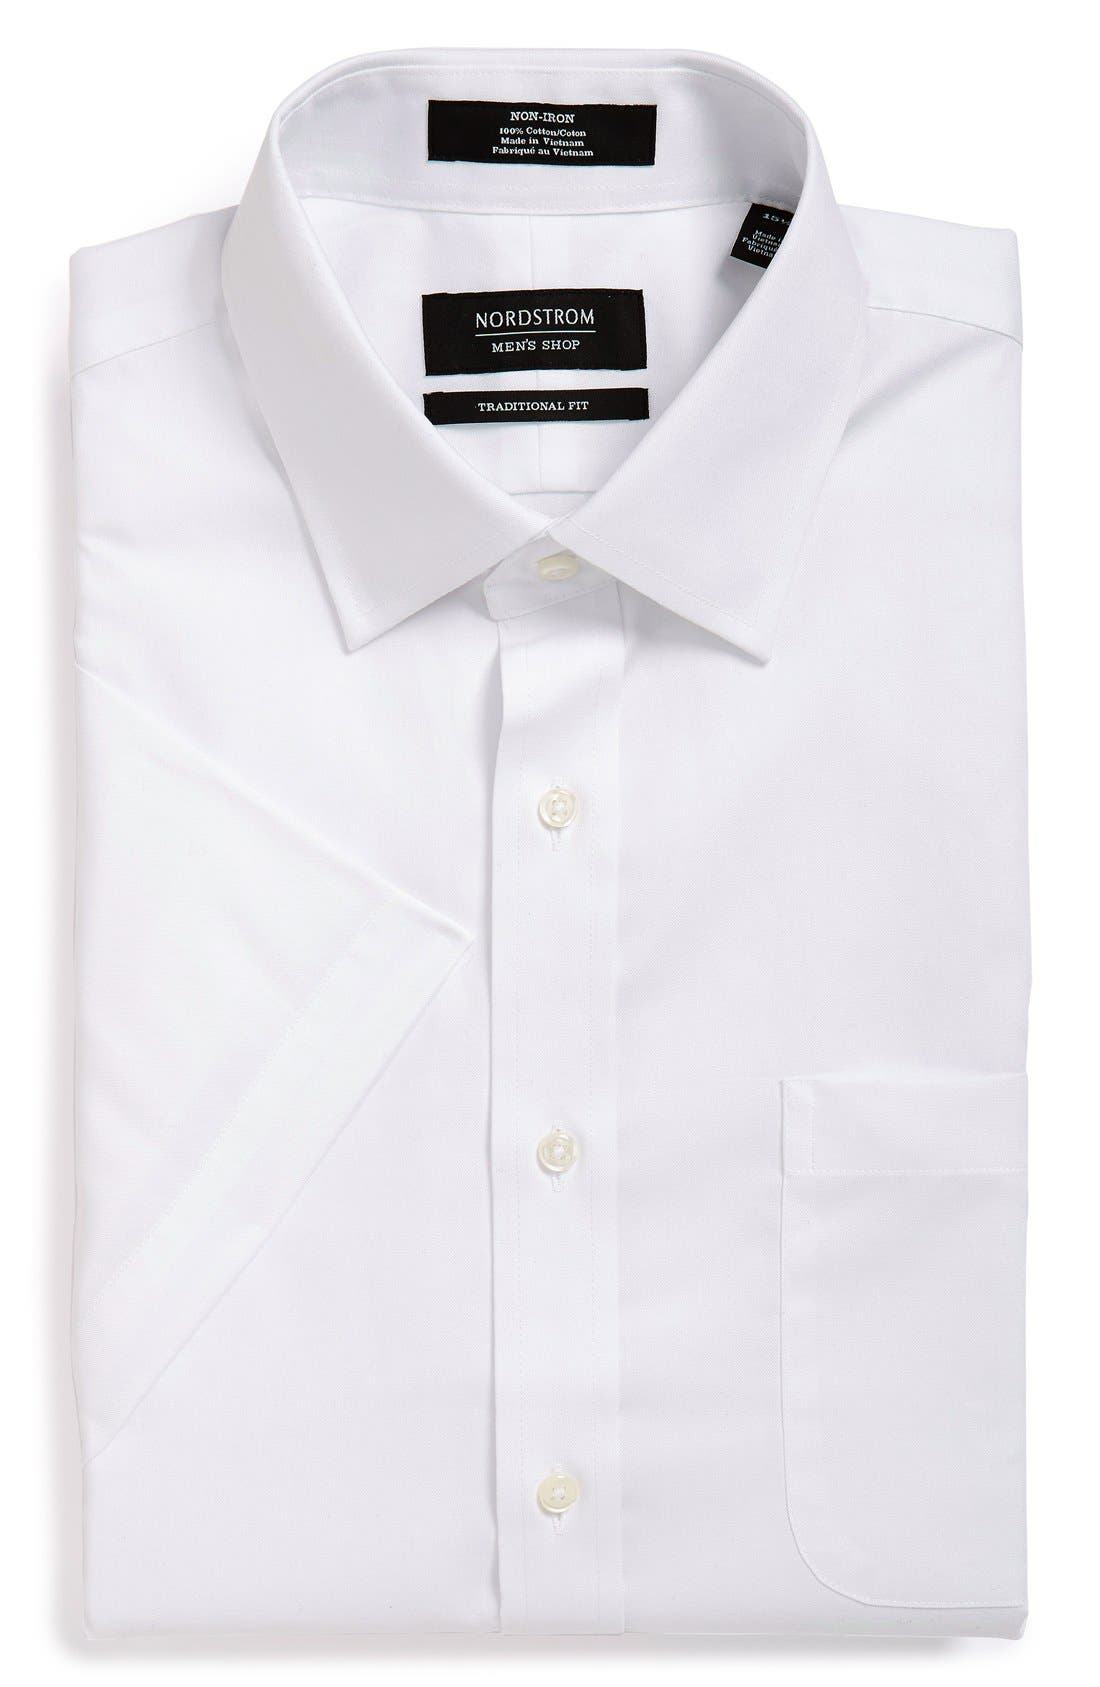 NORDSTROM MEN'S SHOP Traditional Fit Non-Iron Solid Short